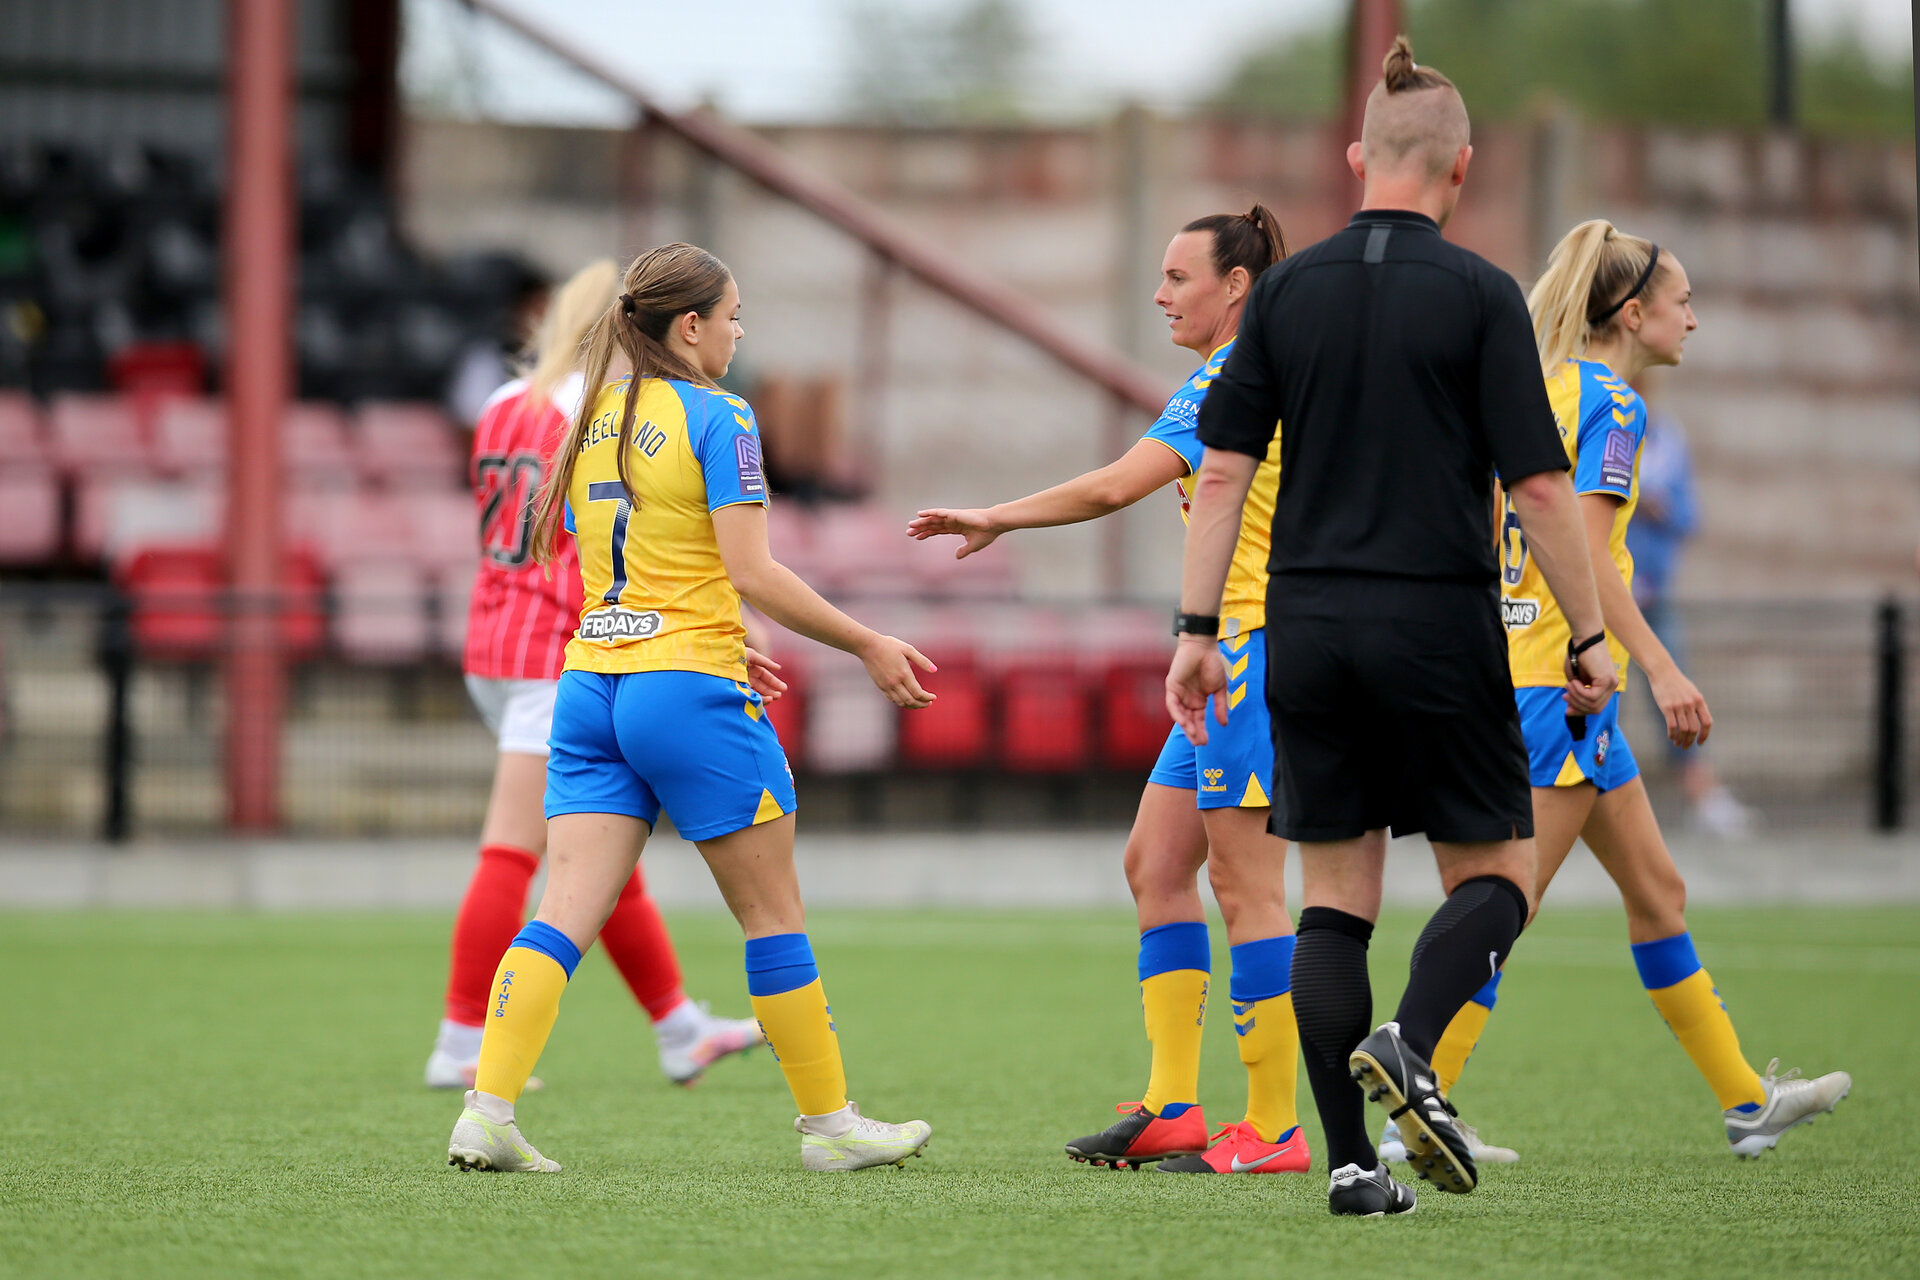 CHELTENHAM, ENGLAND - SEPTEMBER 12:  during the Women's FA National League Cup match between  Cheltenham Town and  Southampton Women at The Corinium Stadium on September 12, 2021 in  Cheltenham, England. (Photo by Isabelle Field/Southampton FC via Getty Images)